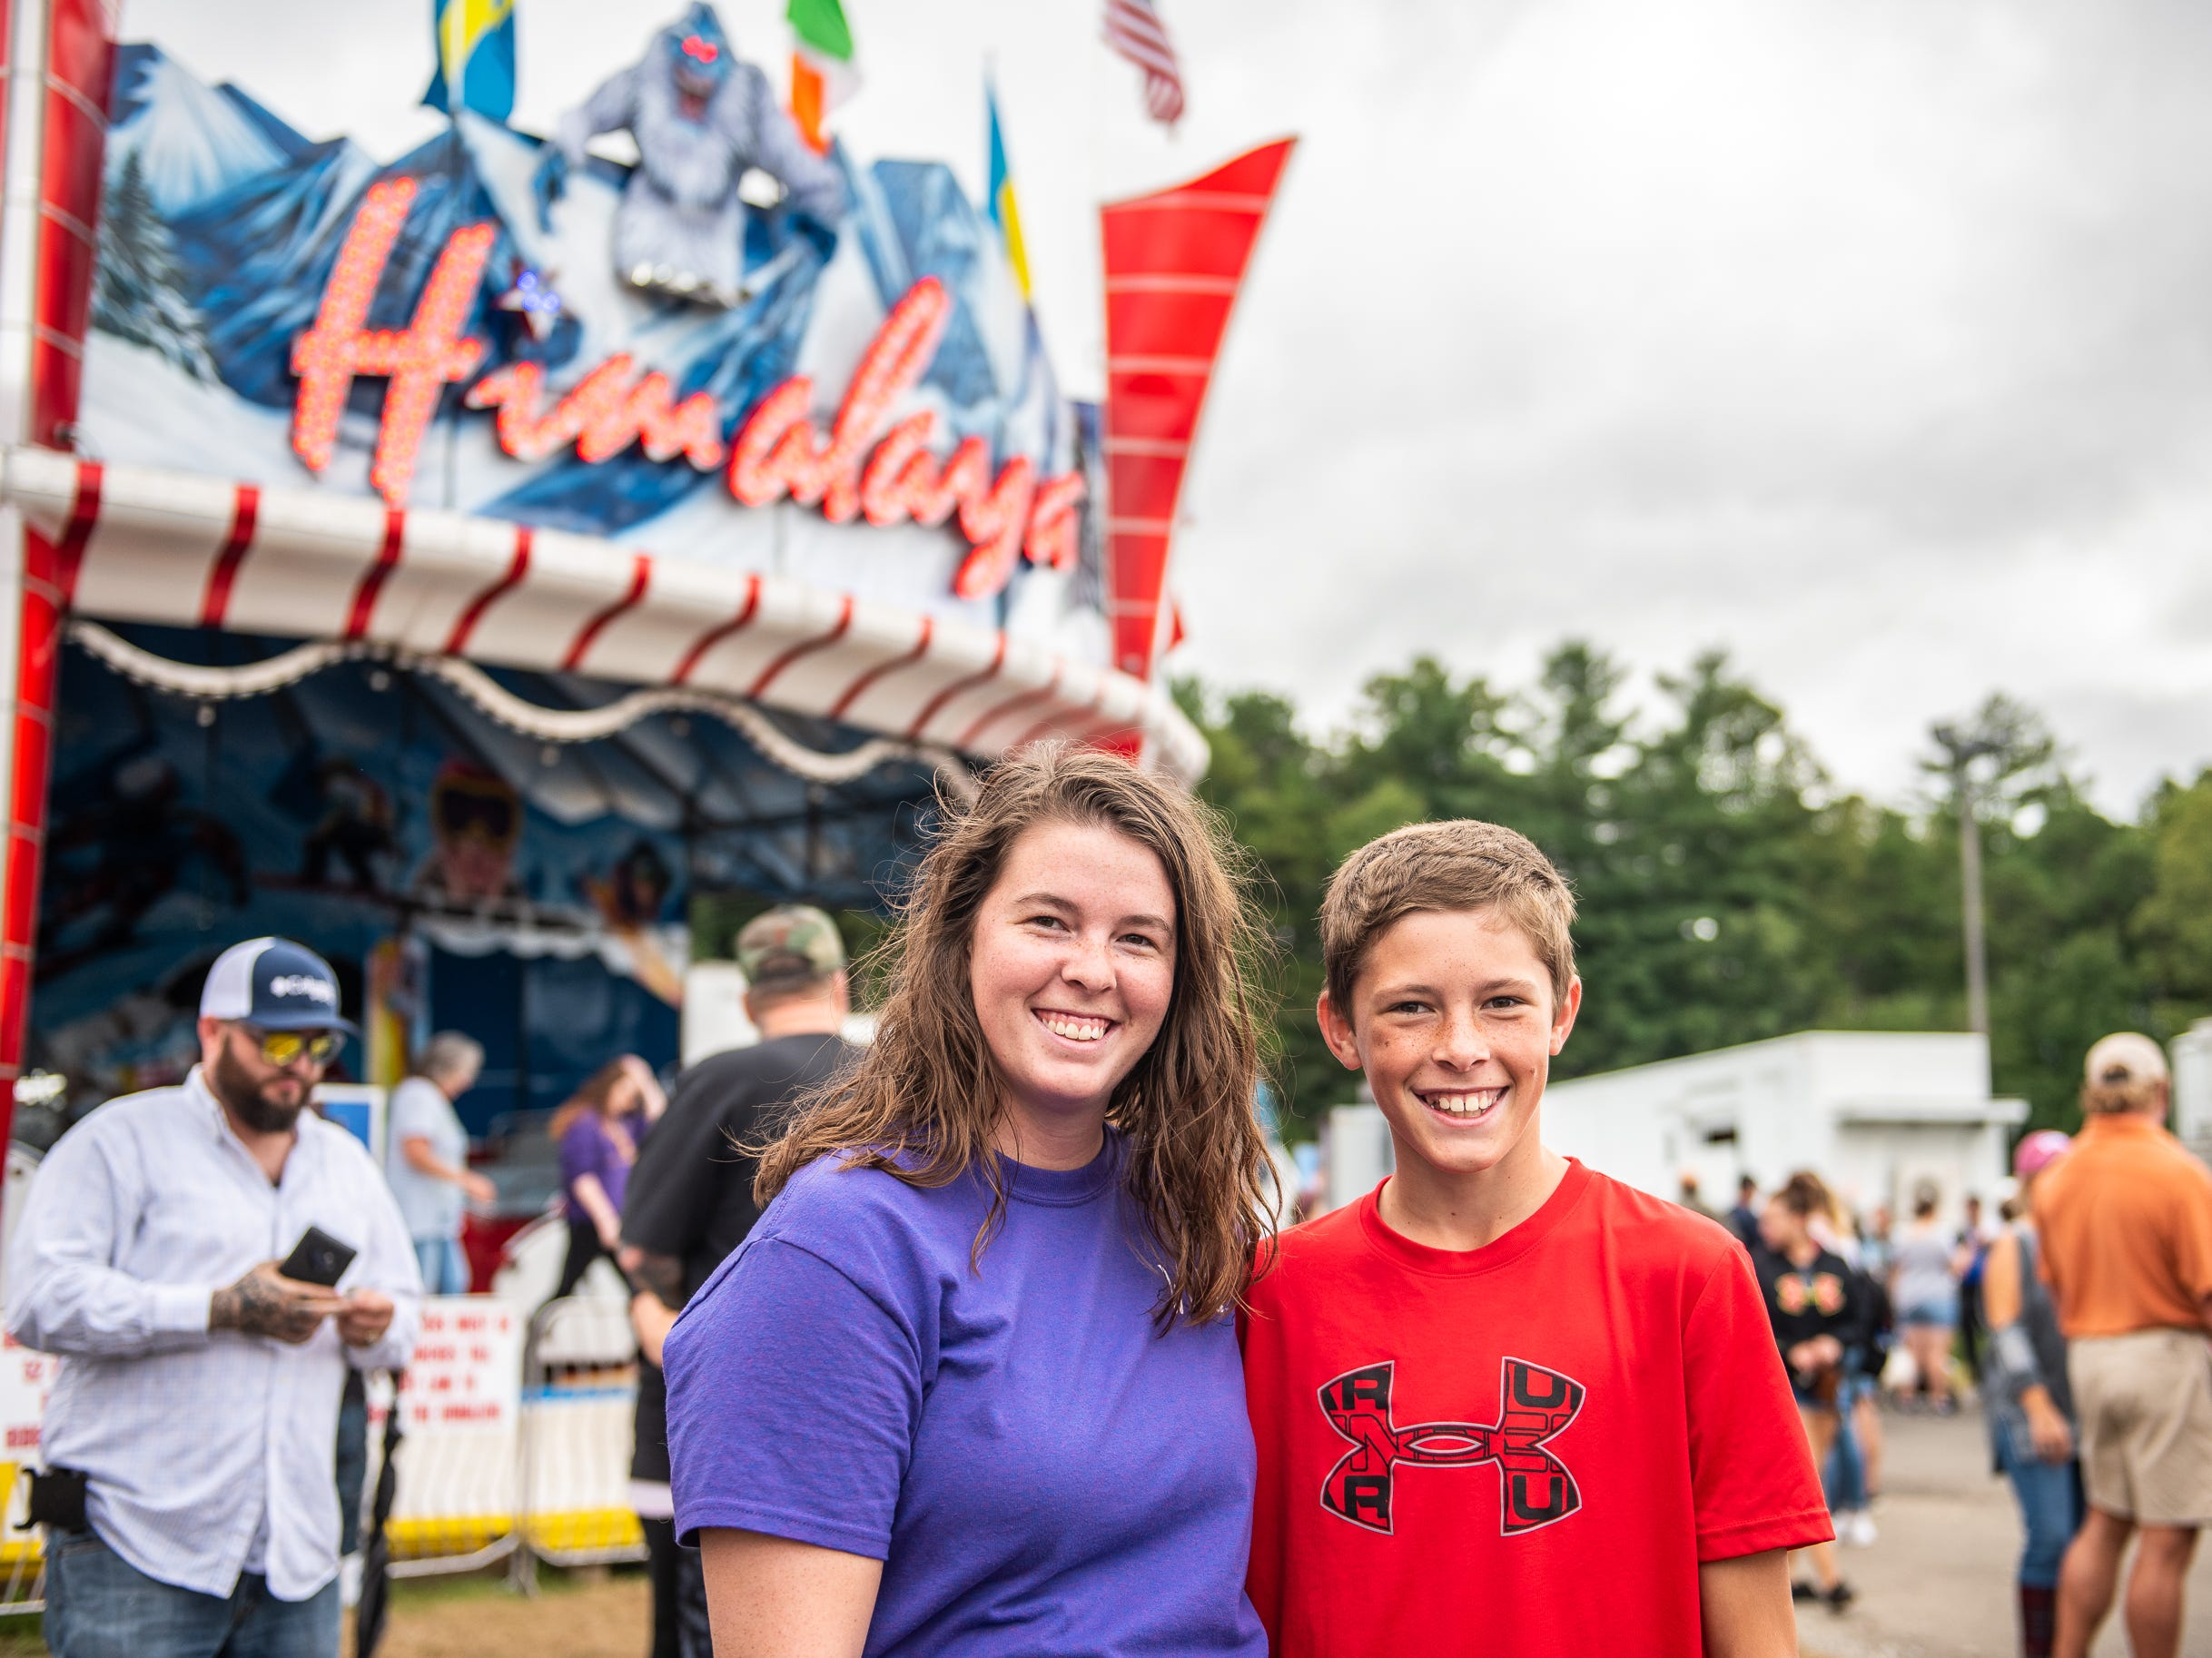 Katlyn and Kaleb D'Alessandro, of Weaverville, had a fun time riding the Himalaya at the N.C. State Fair on Sept. 15, 2018.